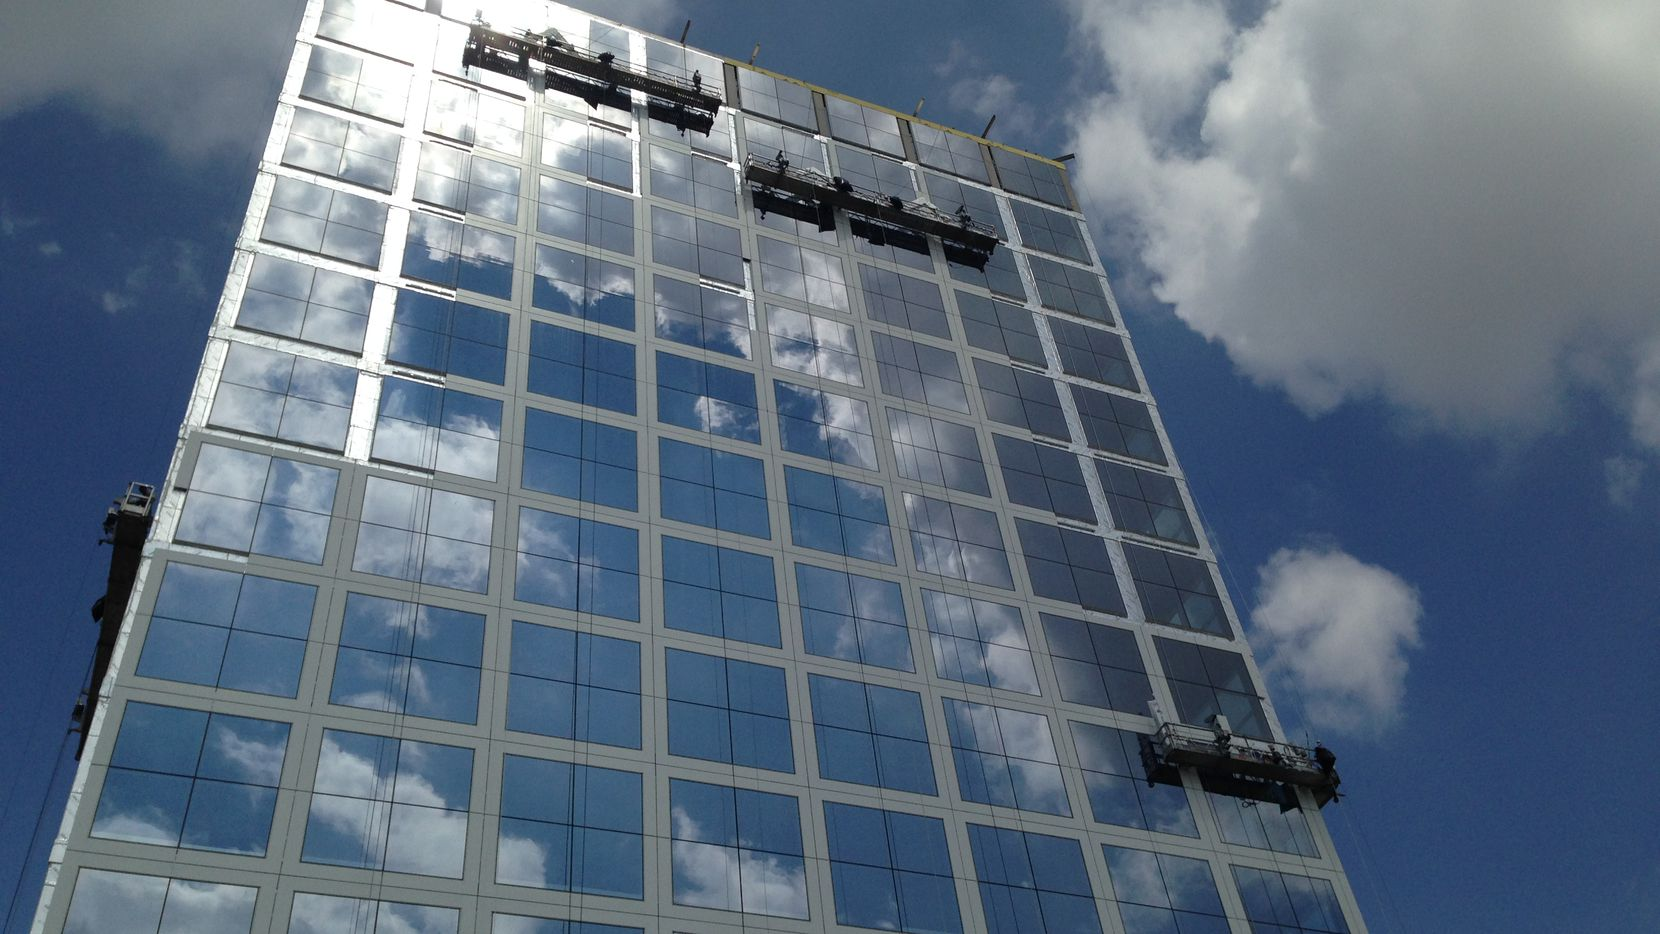 NTT Data is leasing more than 40 percent of the new One Legacy West Tower in Plano